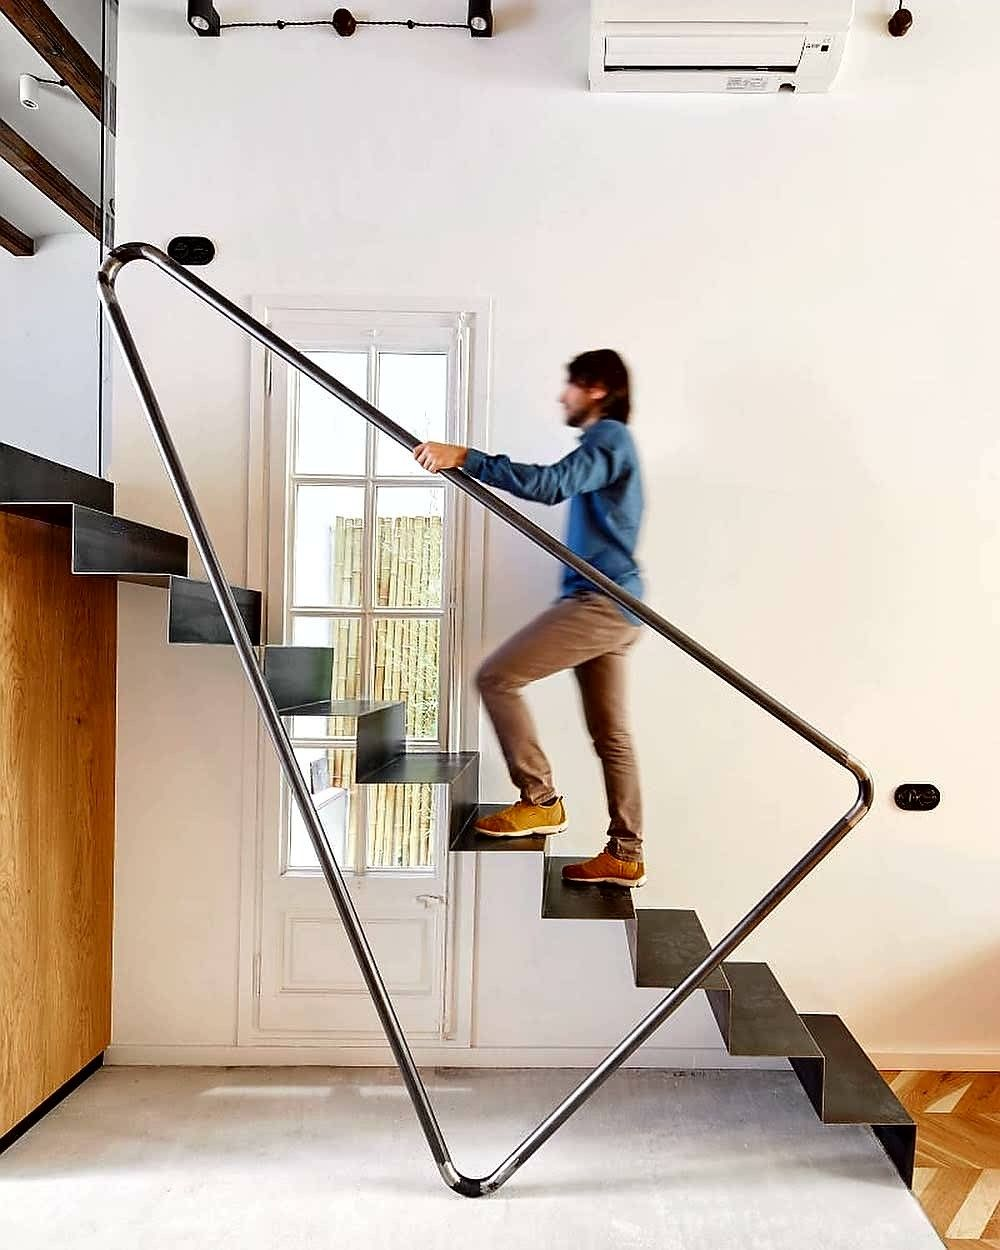 40 Trending Modern Staircase Design Ideas And Stair Handrails: Stairs Design Modern, Stair Railing